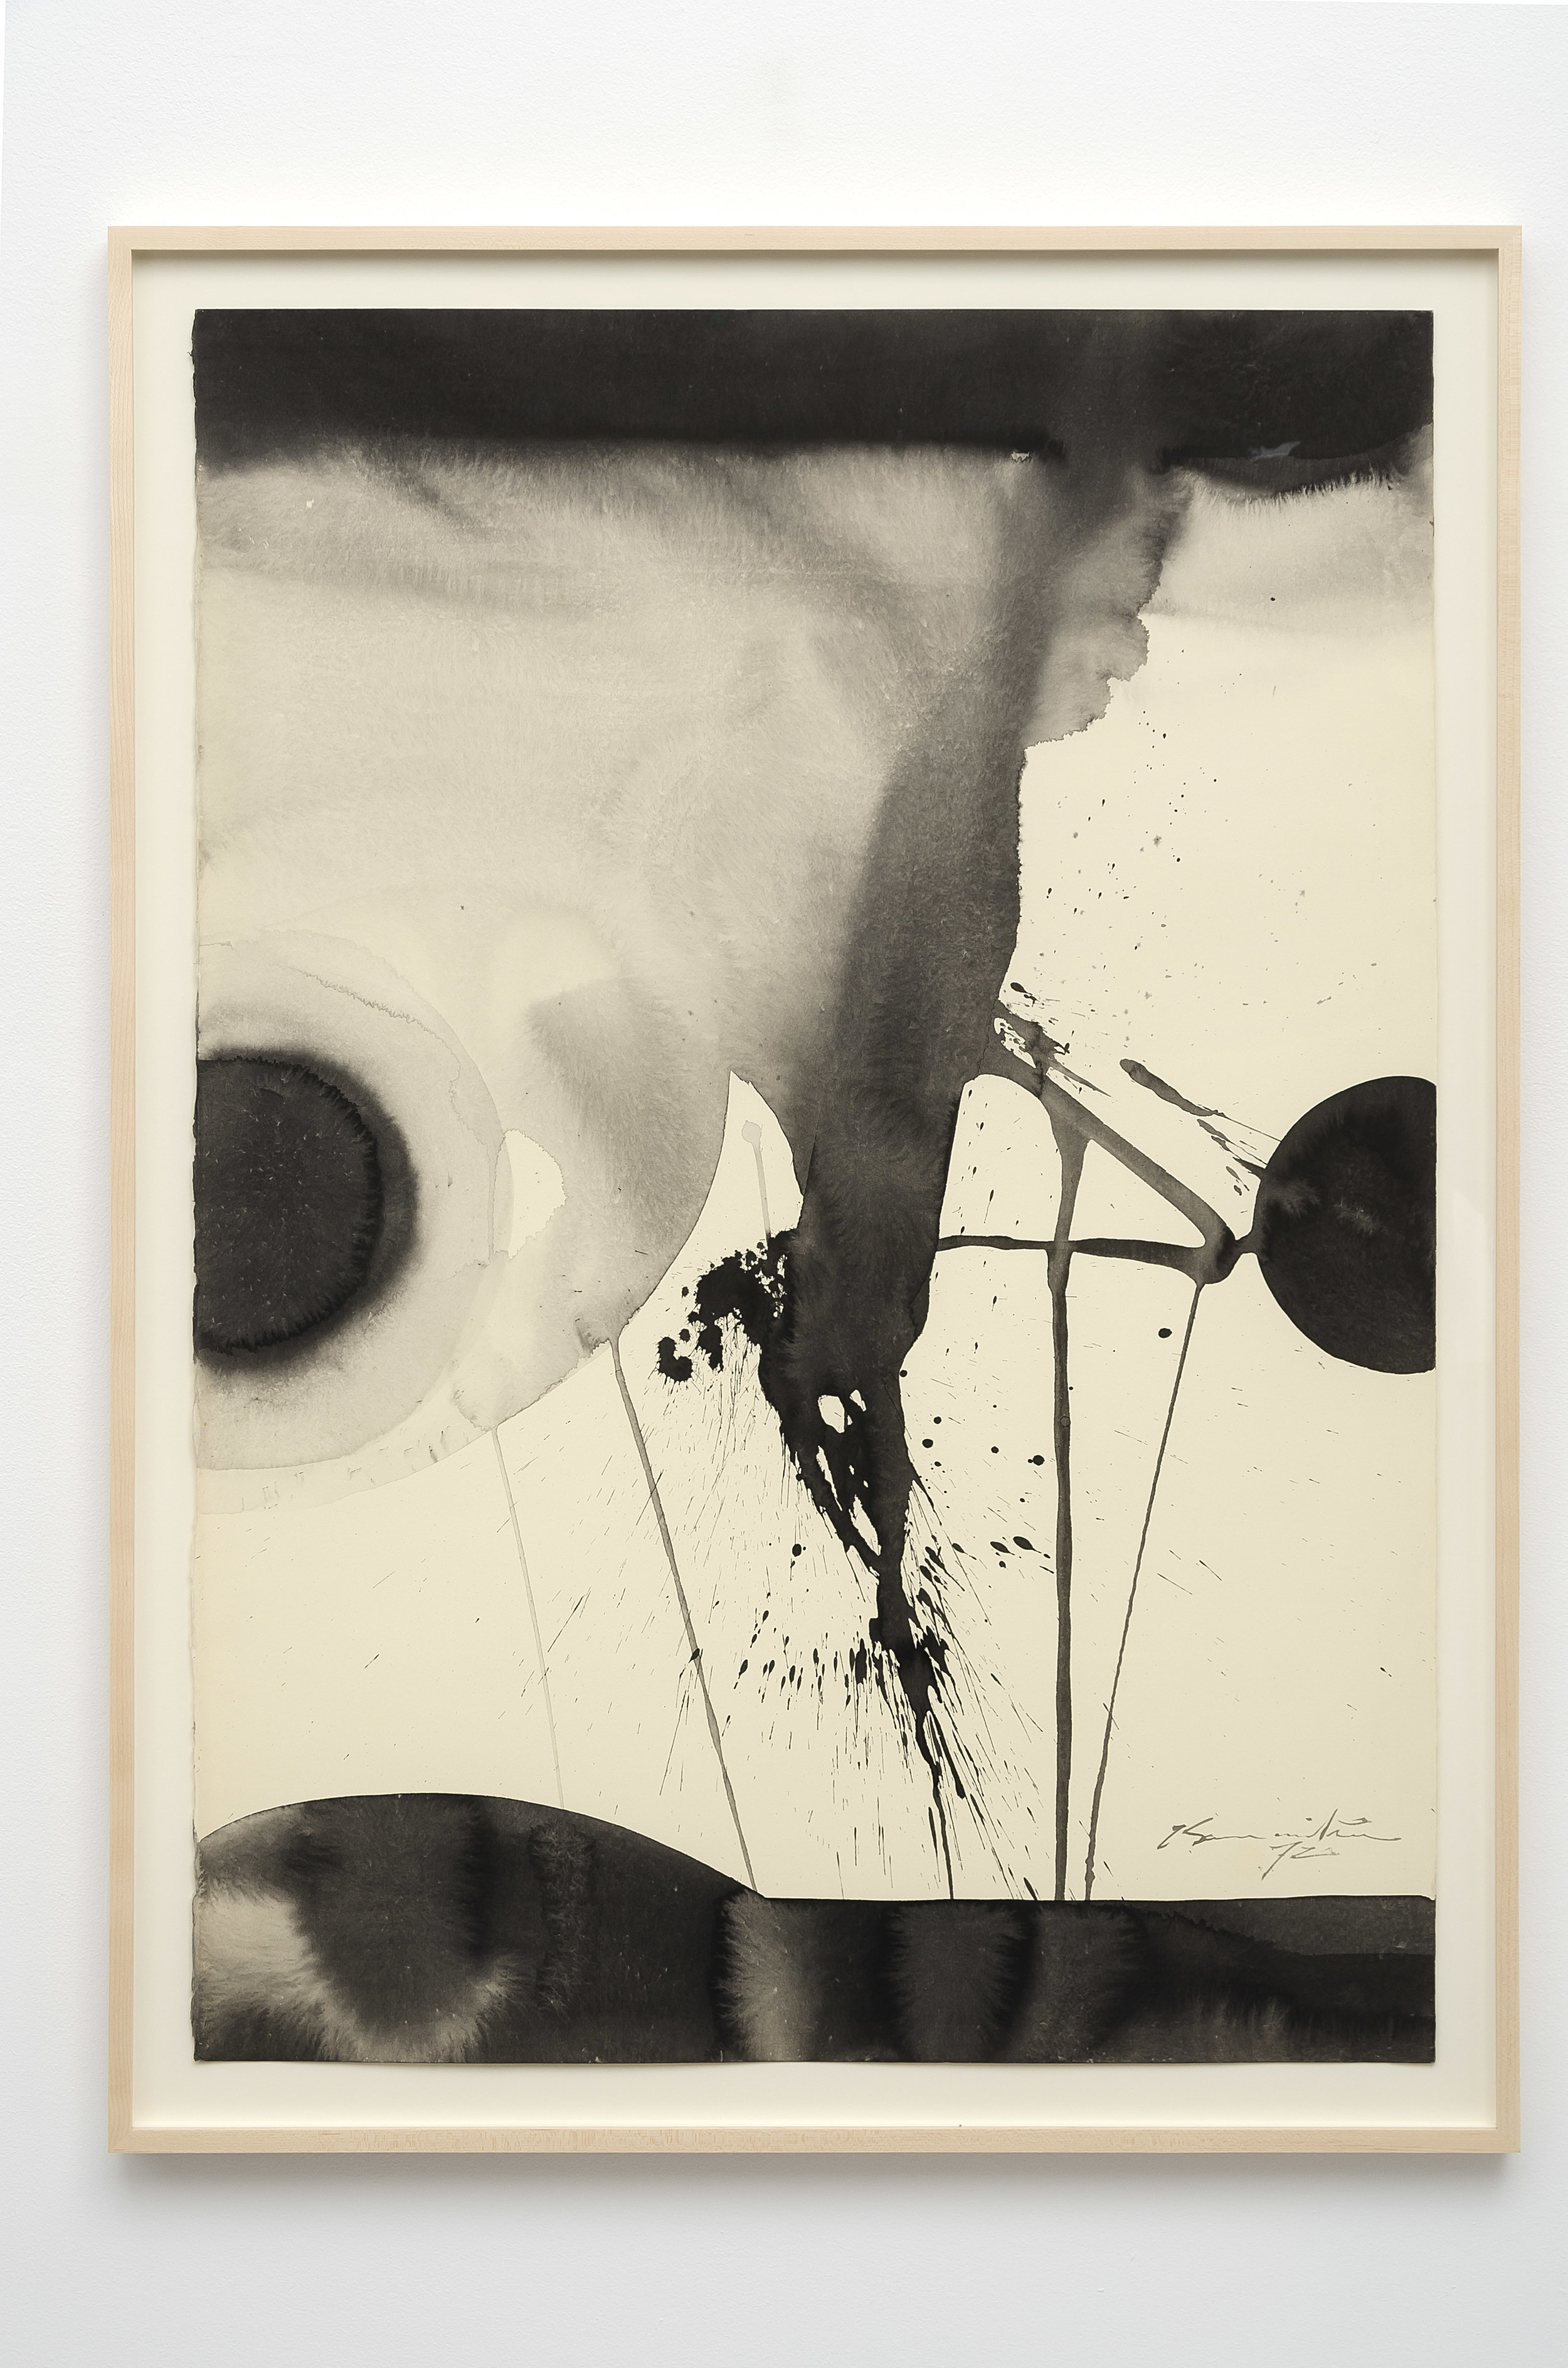 Untitled , 1972 sumi ink on paper 43 x 31.25 inches; 109.2 x 79.4 centimeters